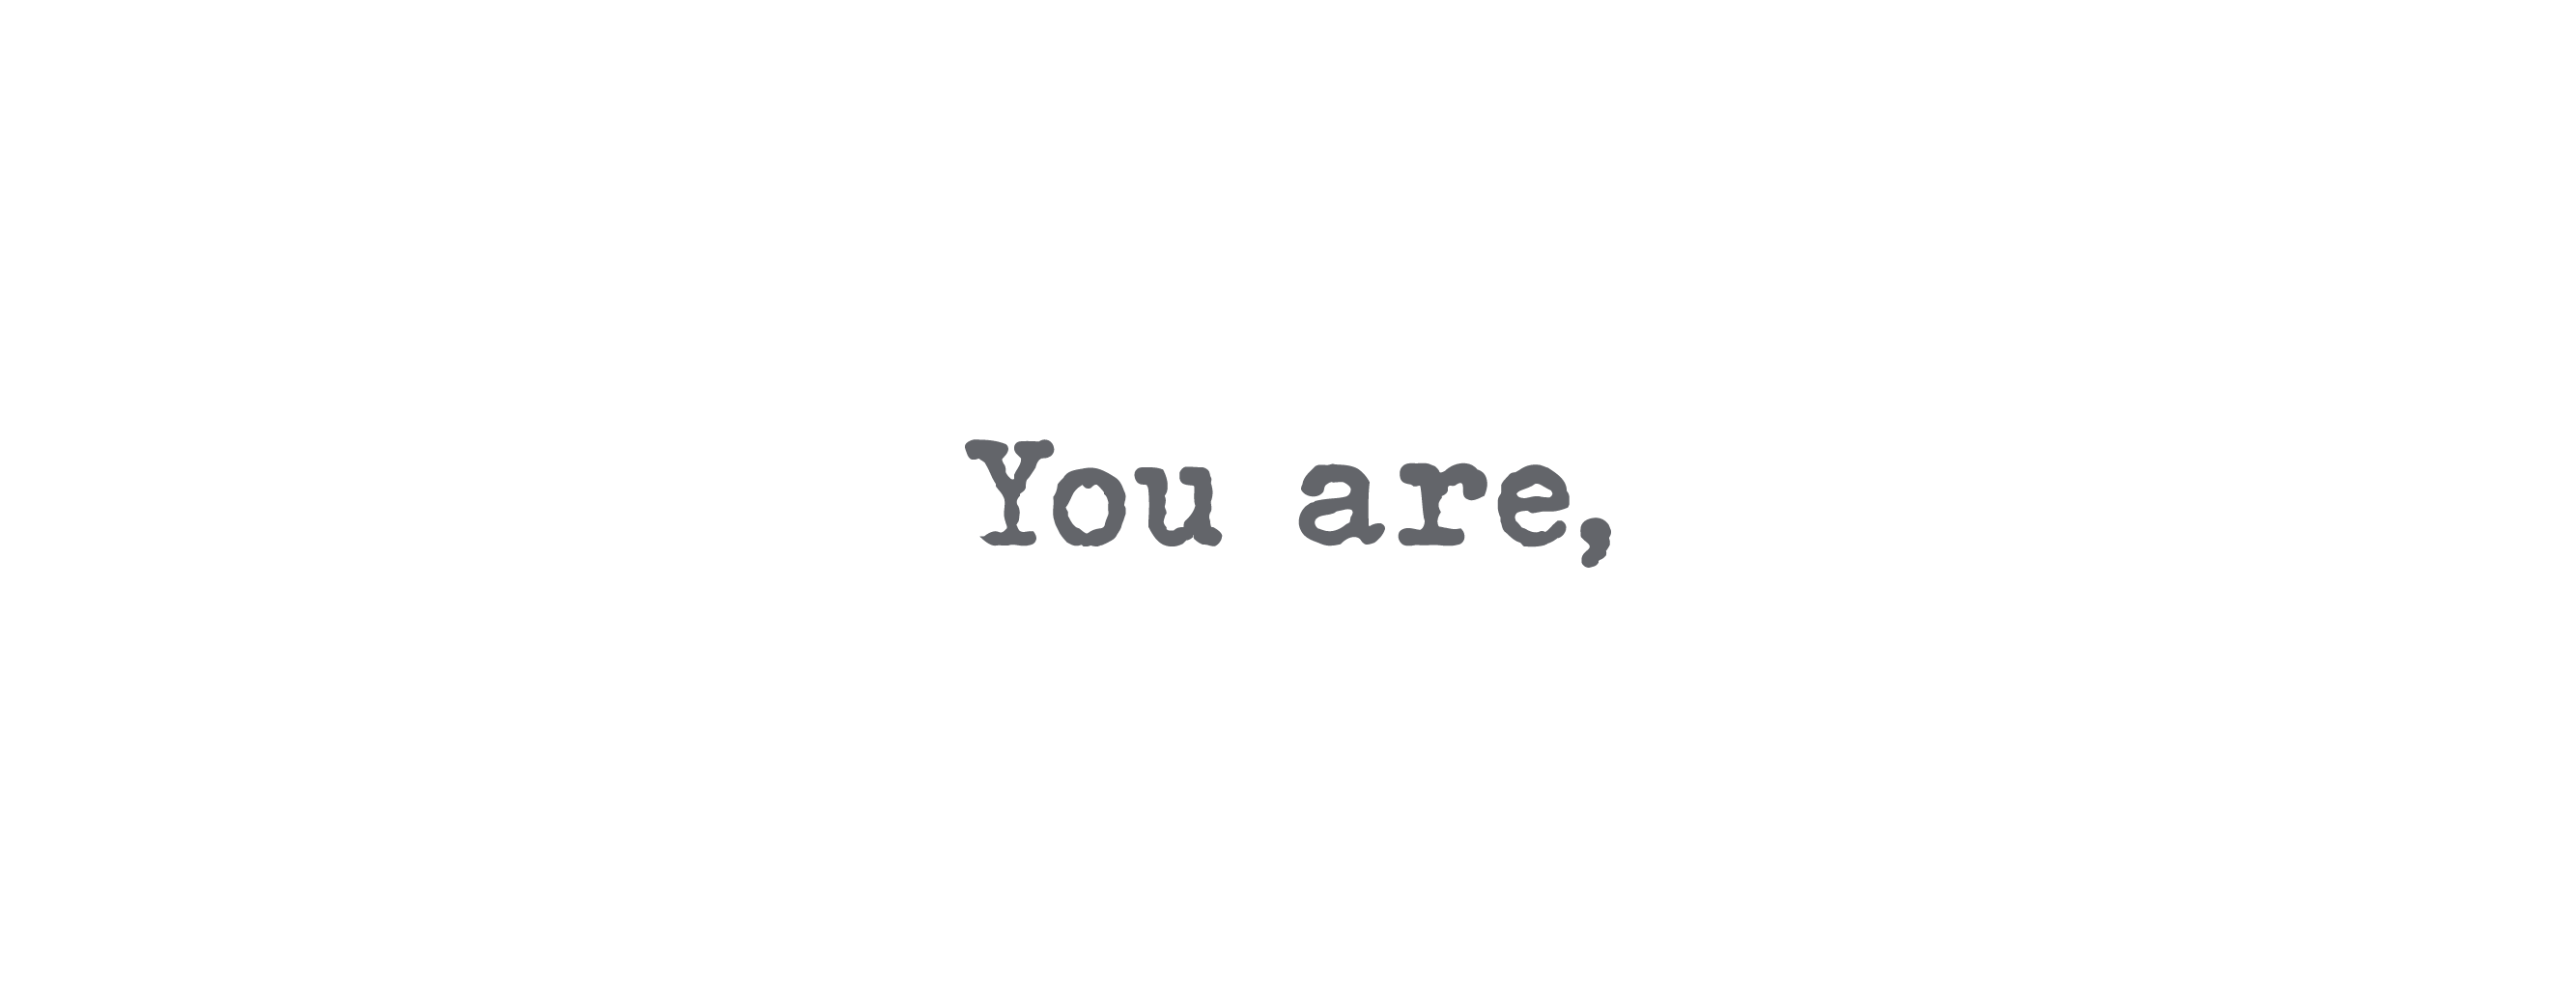 You are_ slides-01